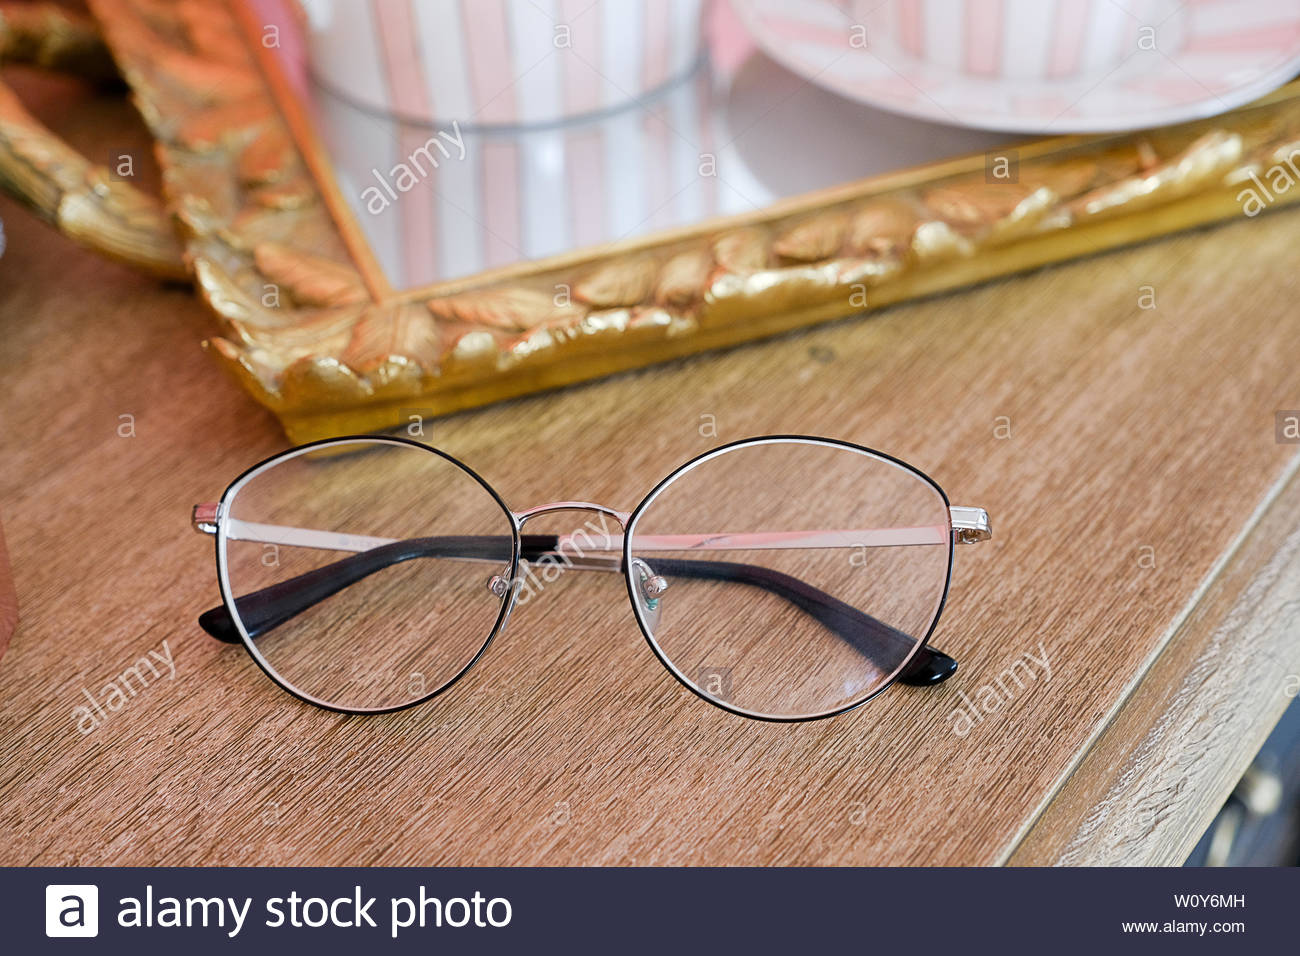 6f21d75ea40f Black-rimmed glasses with glass lenses, on a wooden chest or table. Vintage